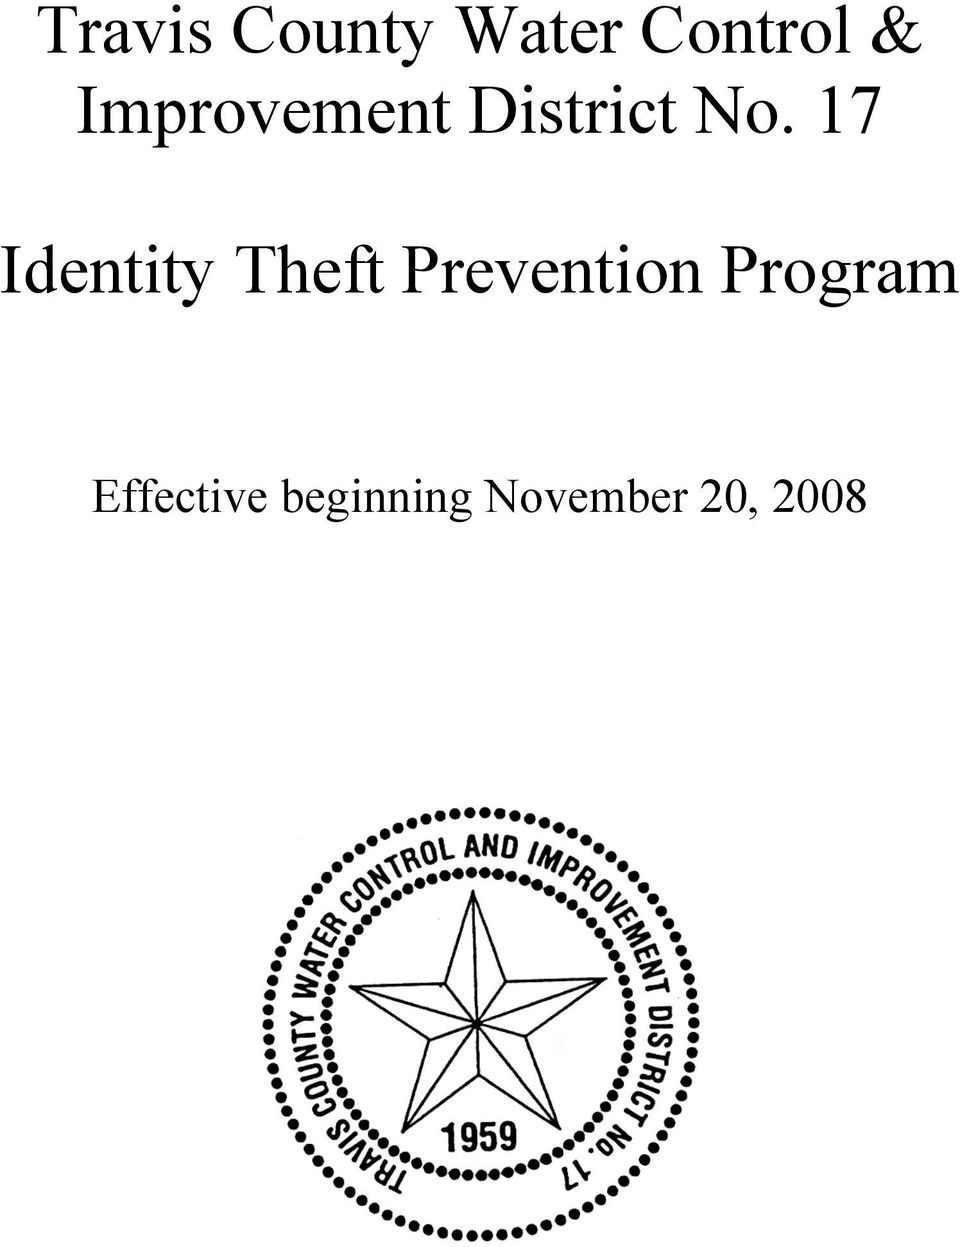 17 Identity Theft Prevention